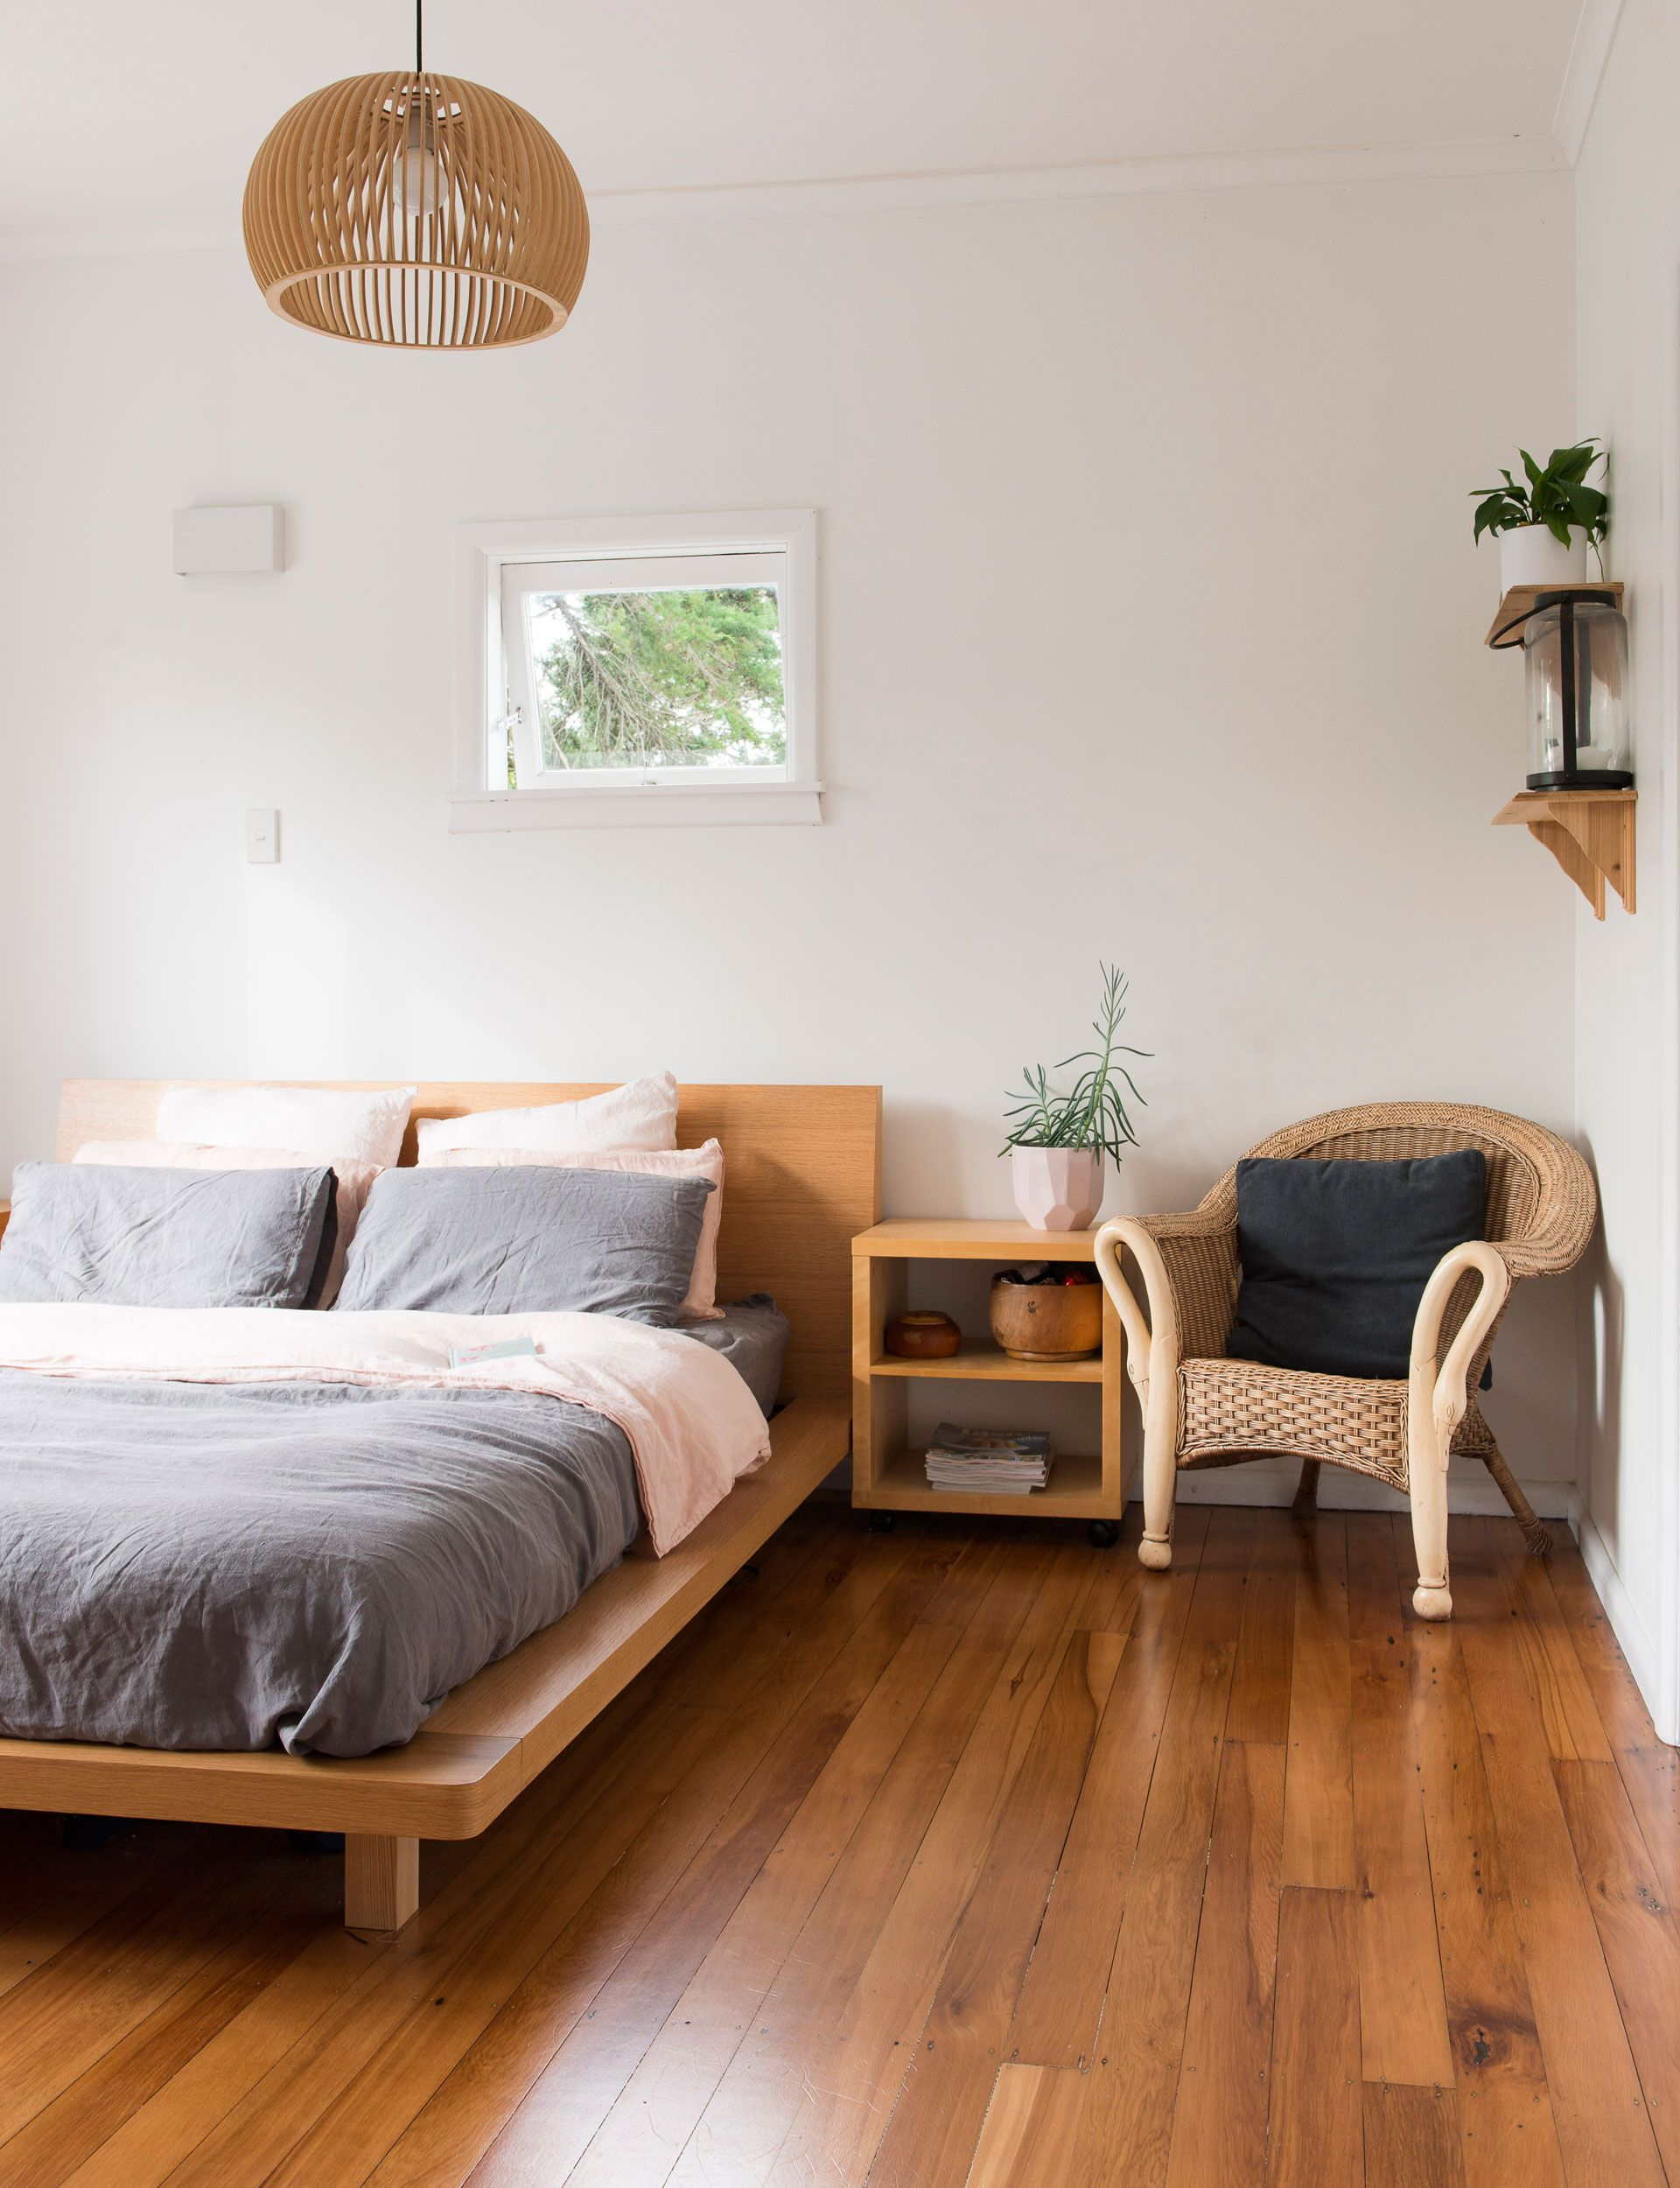 Renovation Rookies Transform A Tired Cottage On Shoestring Budget